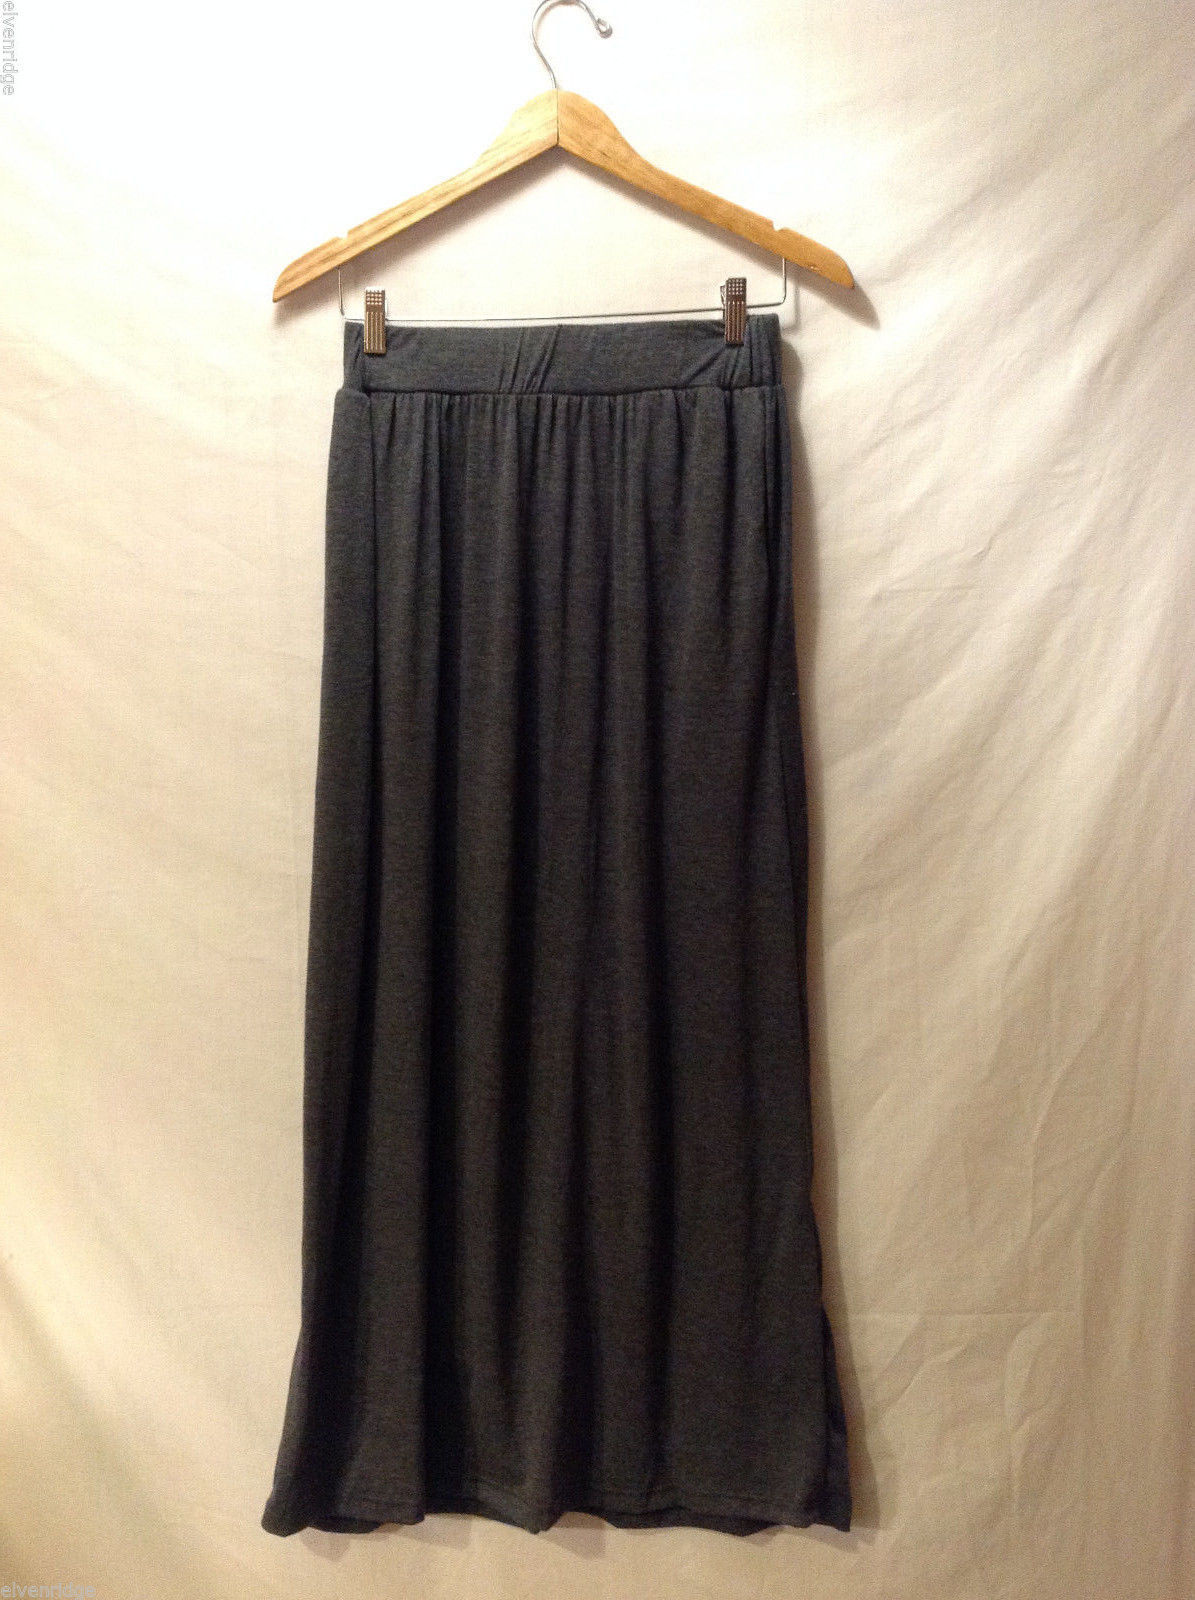 Kylea Women's Size S Skirt Gray Stretchy Knit Pull-On Maxi Length w/ Pockets